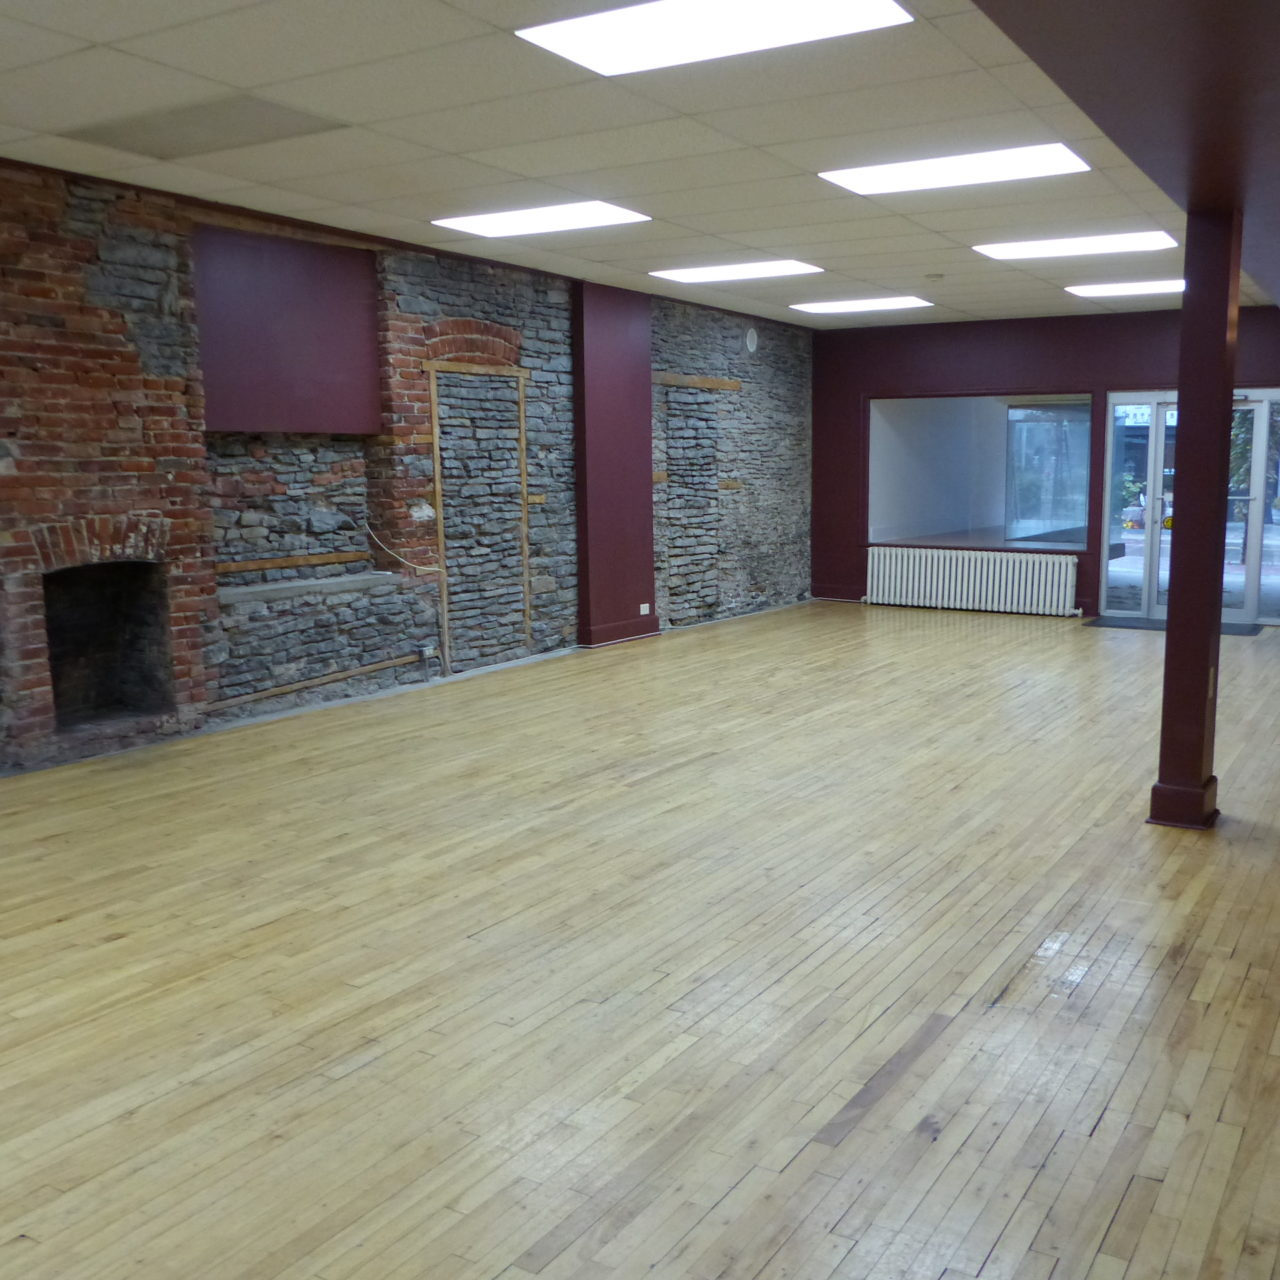 Professionally Restored Historic Commercial Space